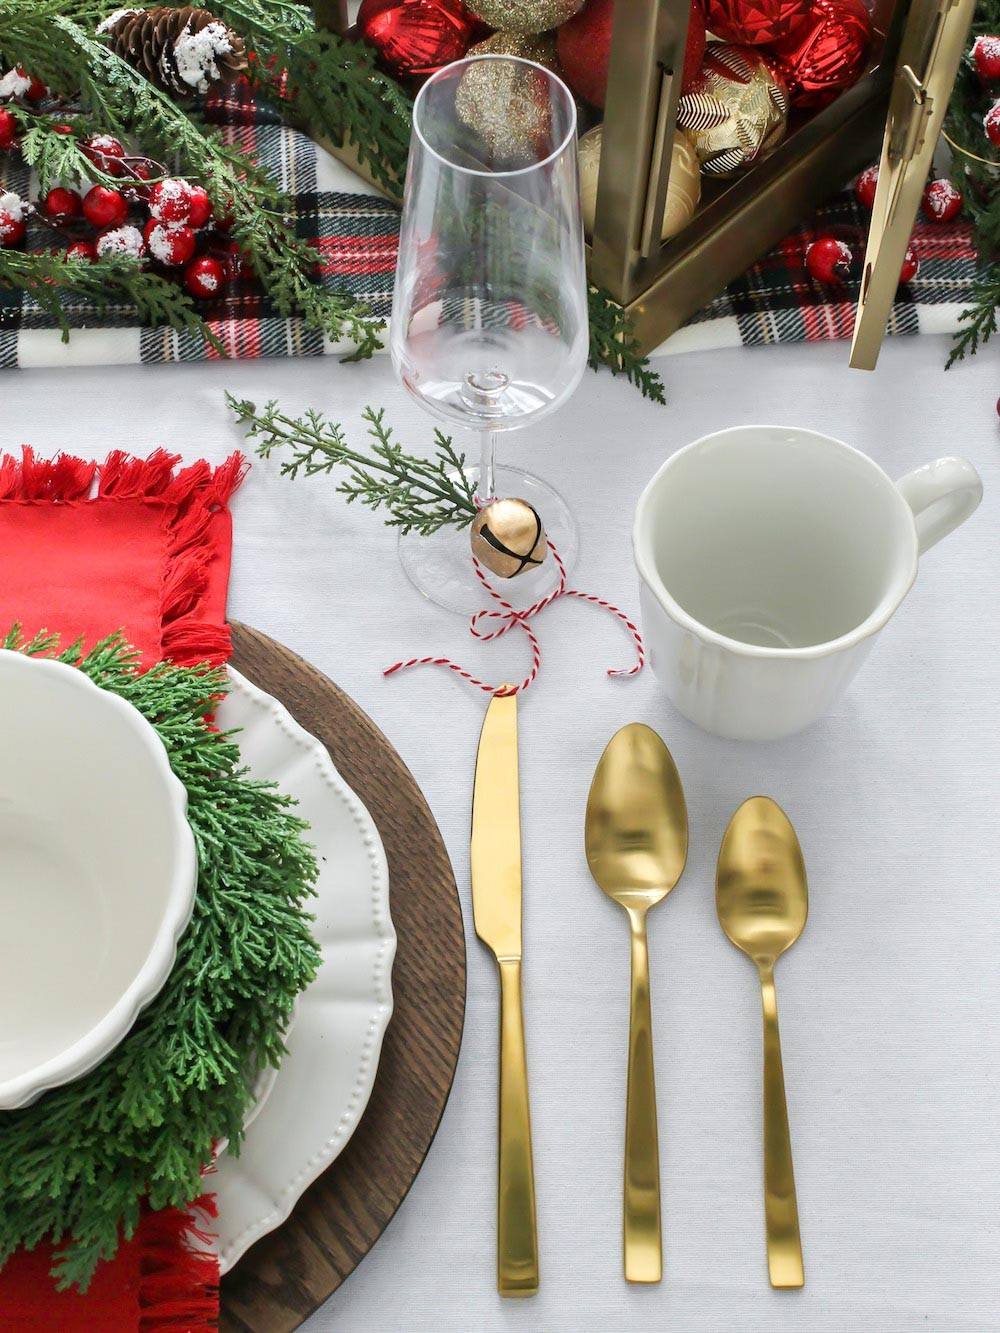 Creating a Festive Holiday Brunch